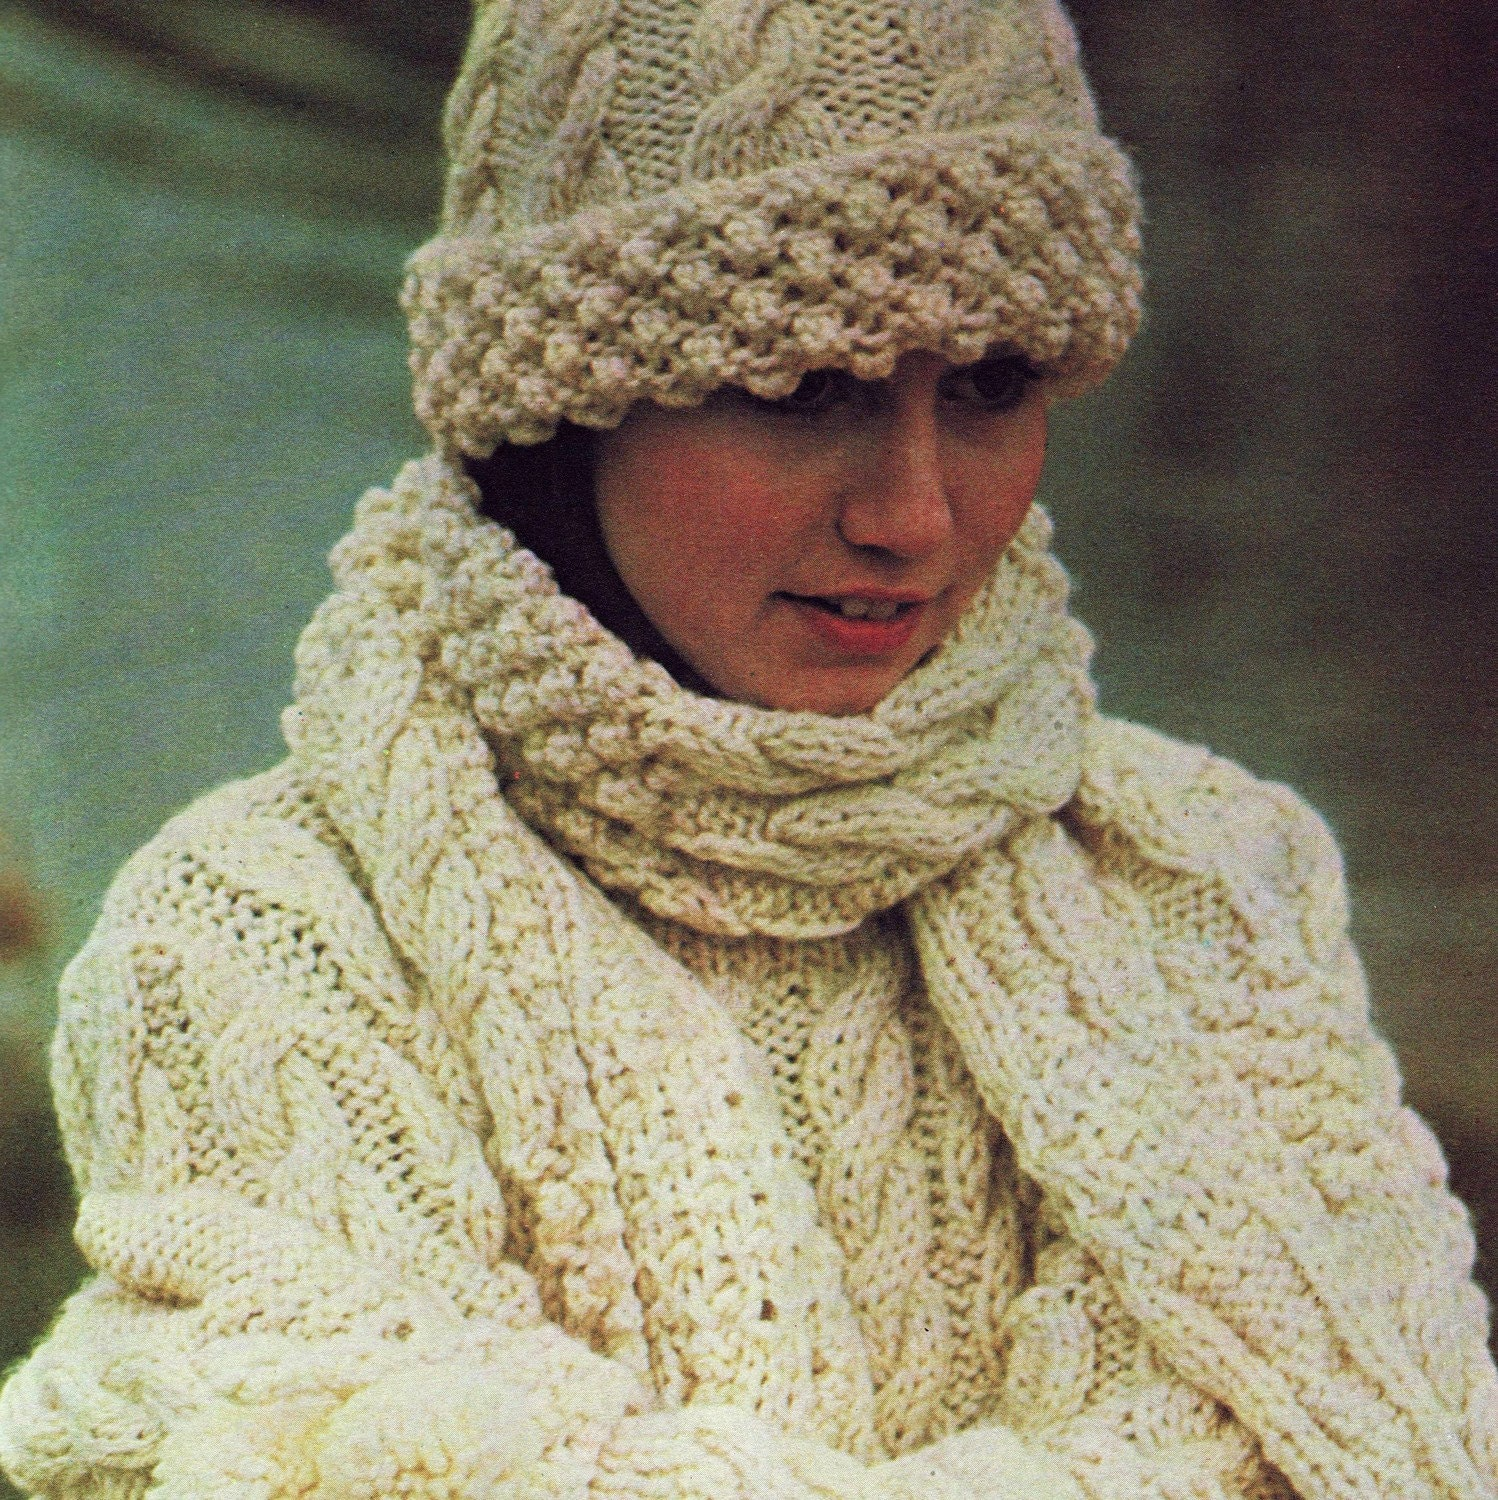 Knitting Pattern Aran Cable Hat : Vintage Knitting Pattern PDF Aran Sweater Hat Scarf And Gloves Cable